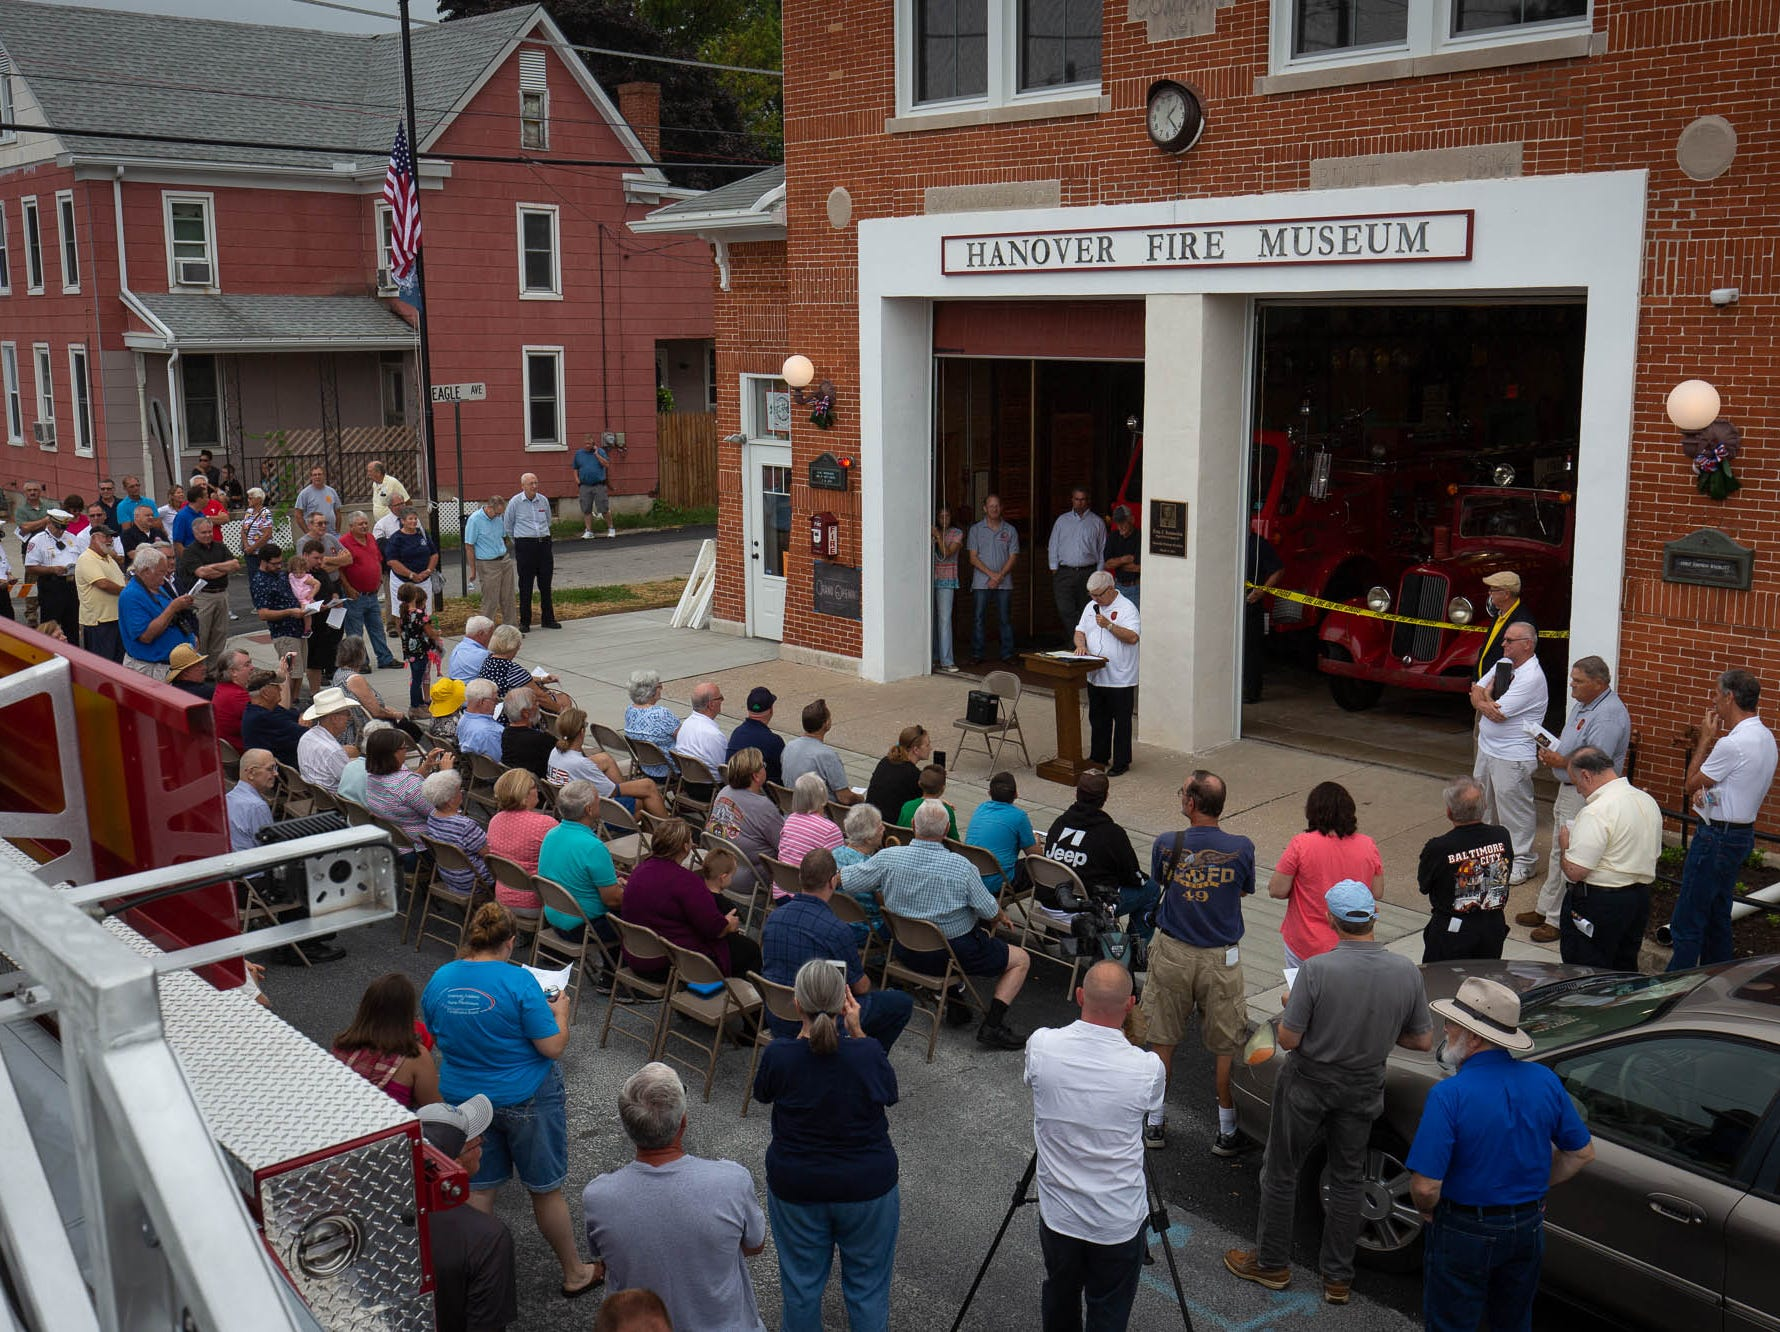 Retired fire commissioner Jim Roth speaks during the dedication ceremony for the new Greater Hanover Area Fire Museum, Saturday, Sept. 1, 2018, in Hanover.